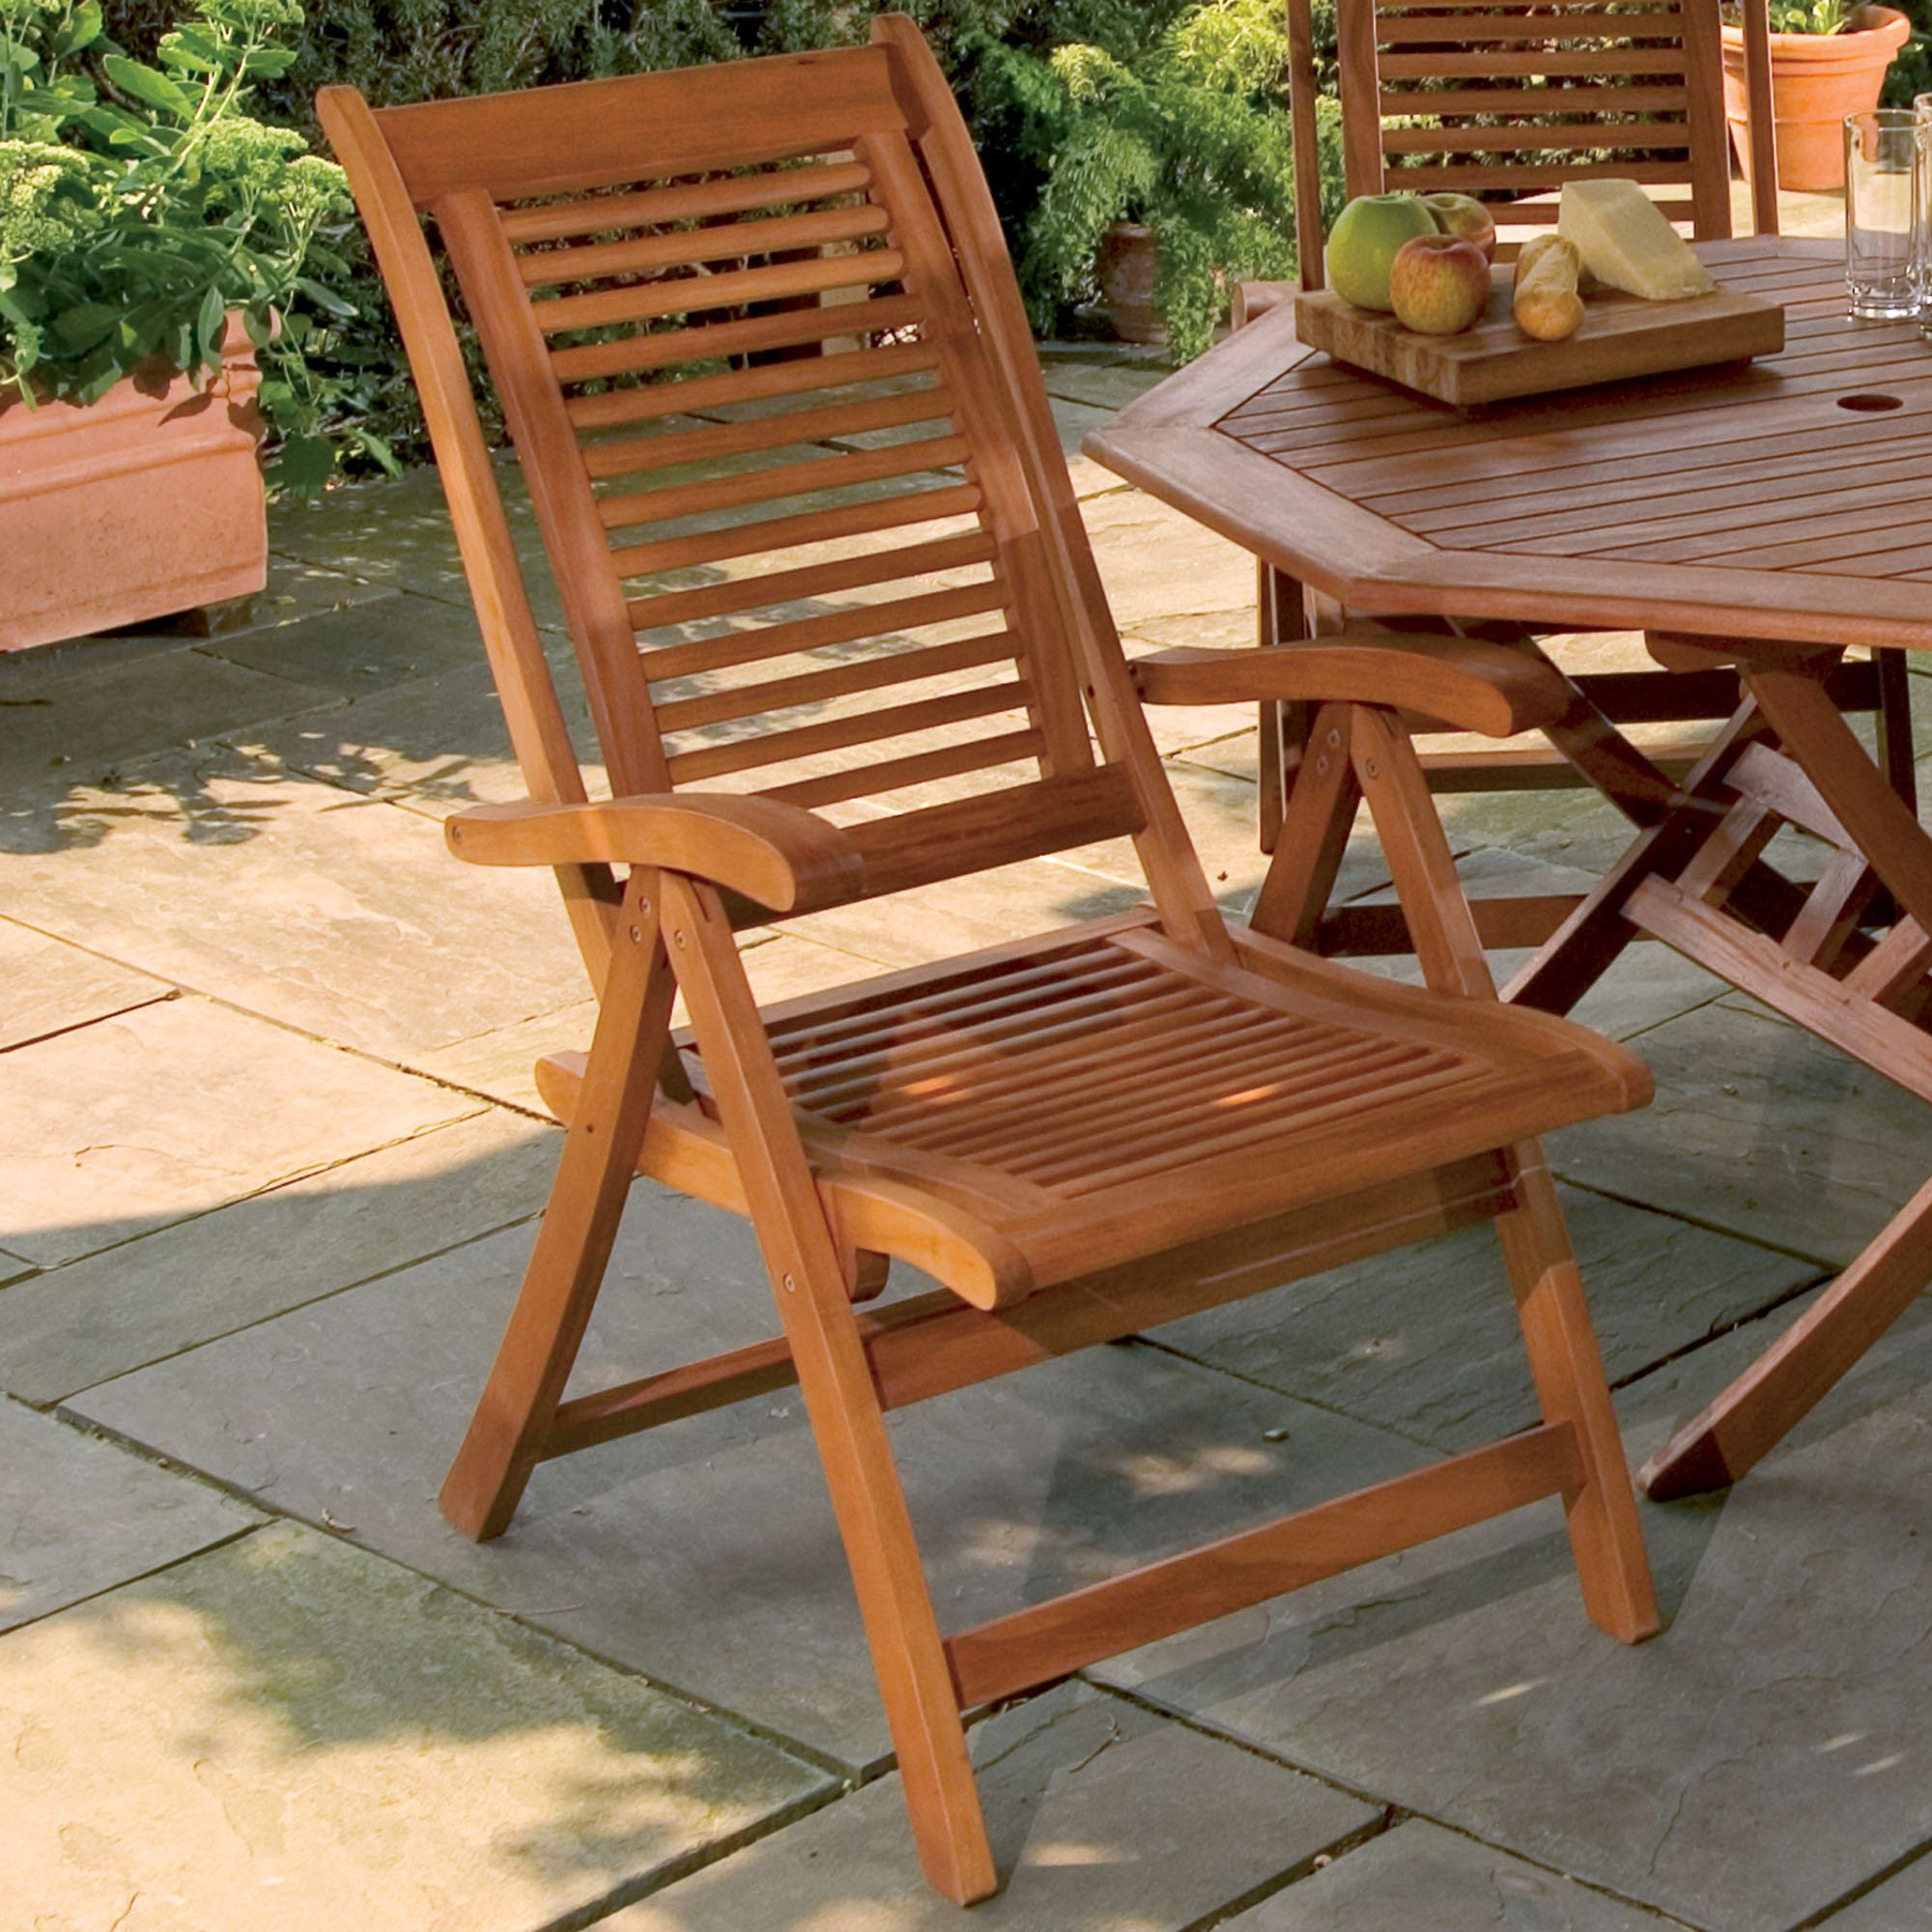 decorating deck wood with and your backyard bath home pictures design ideas great small designs patio decks decorate